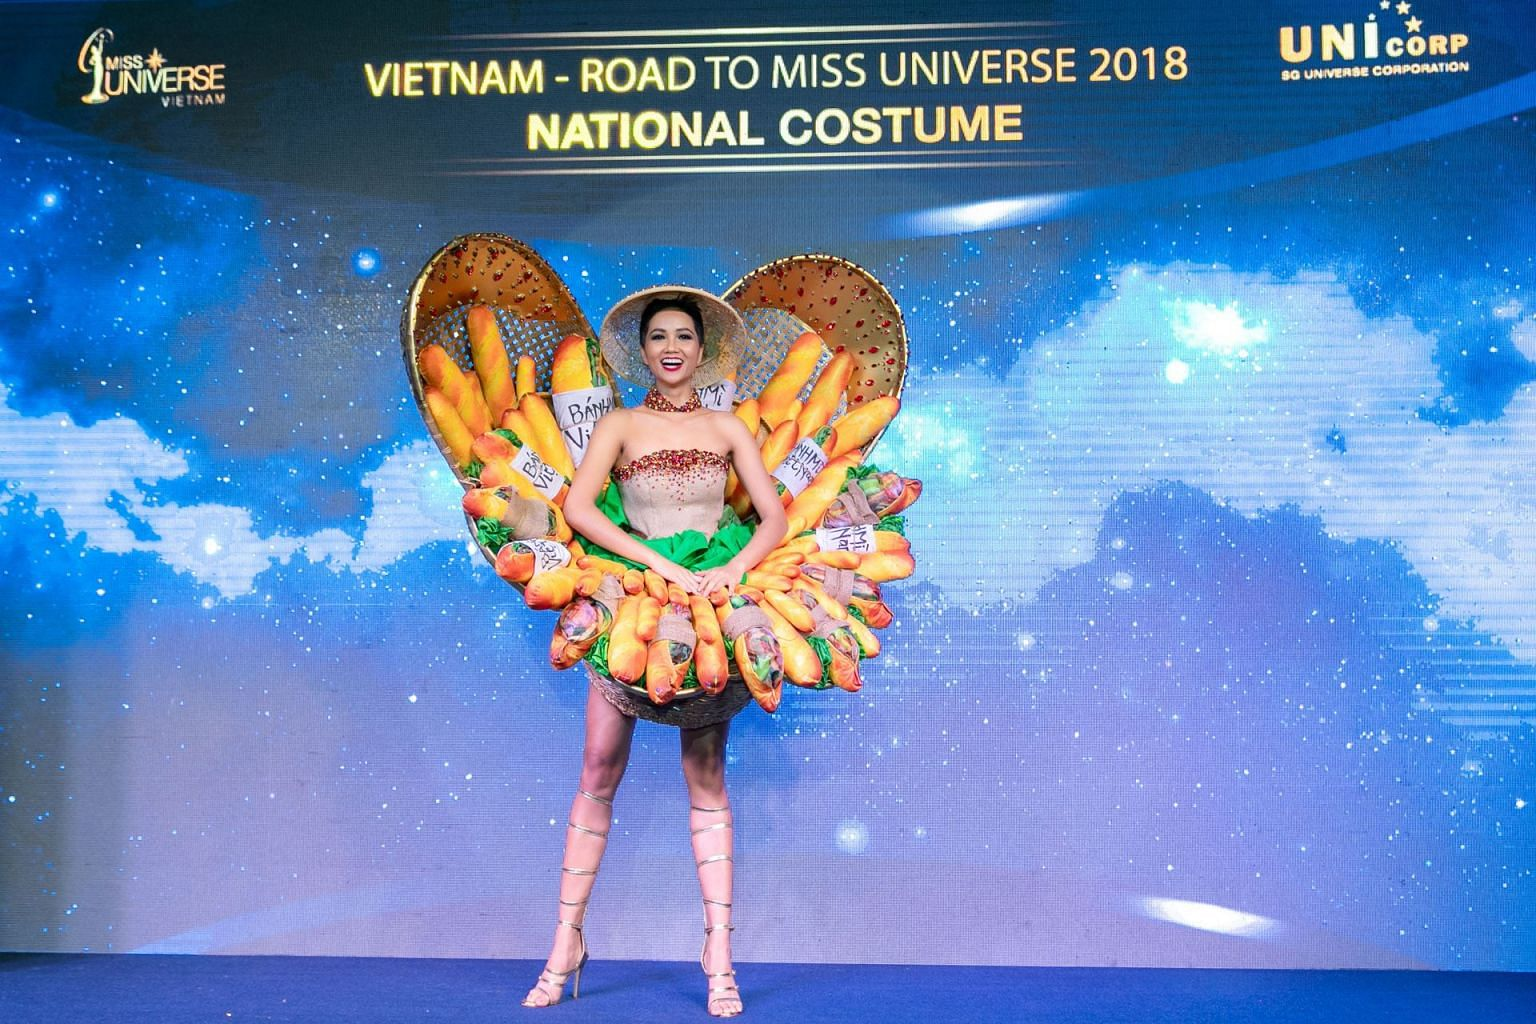 Miss Vietnam\u0027s baguette,themed national costume design for Miss Universe  2018 causes a stir, SE Asia News \u0026 Top Stories , The Straits Times